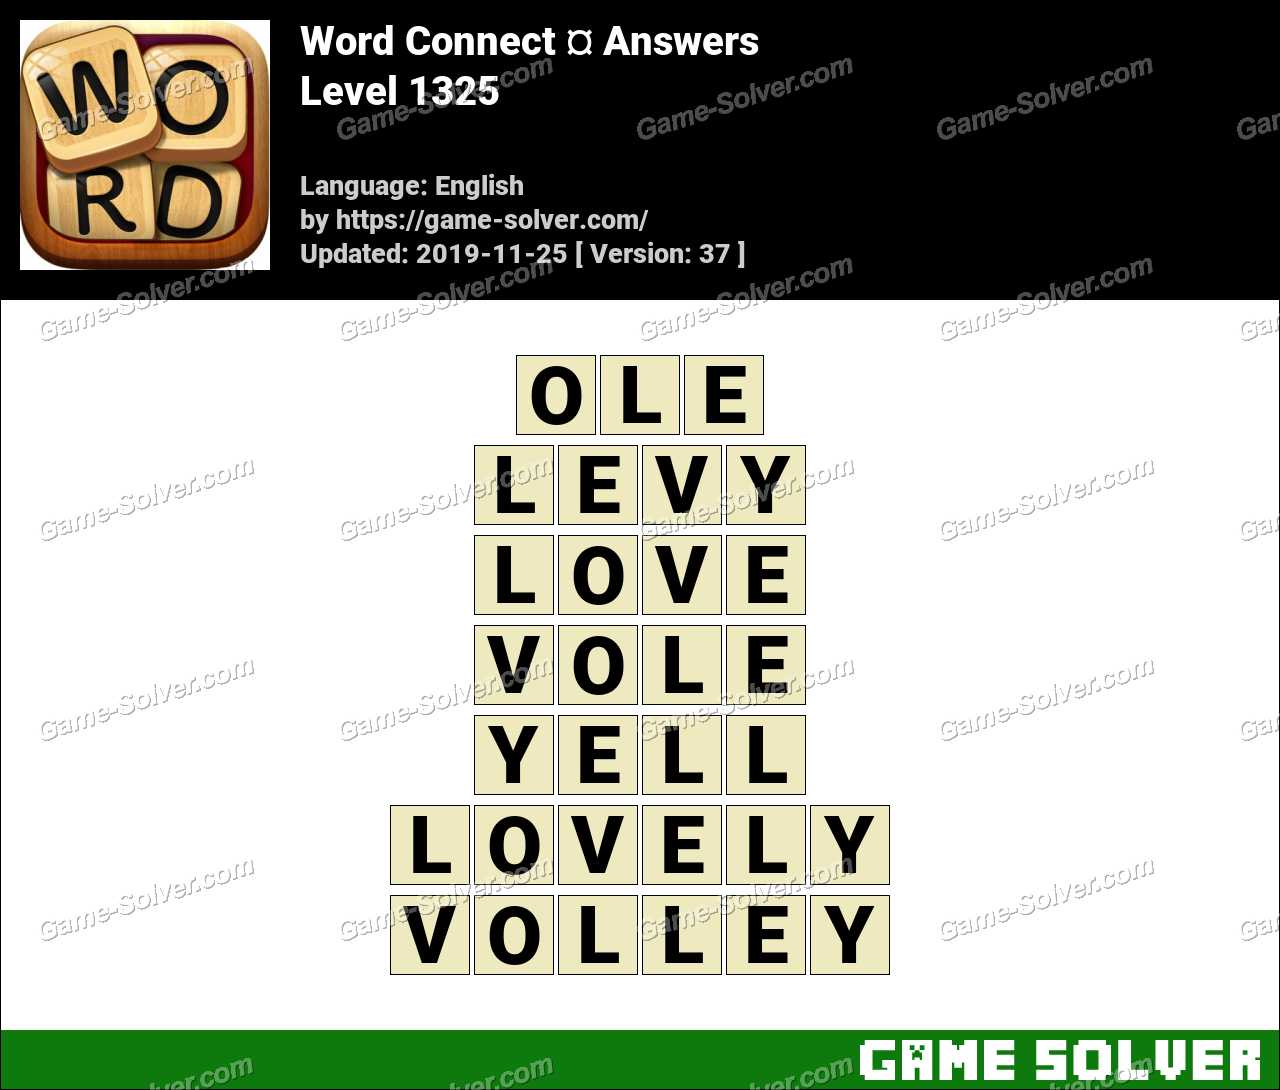 Word Connect Level 1325 Answers